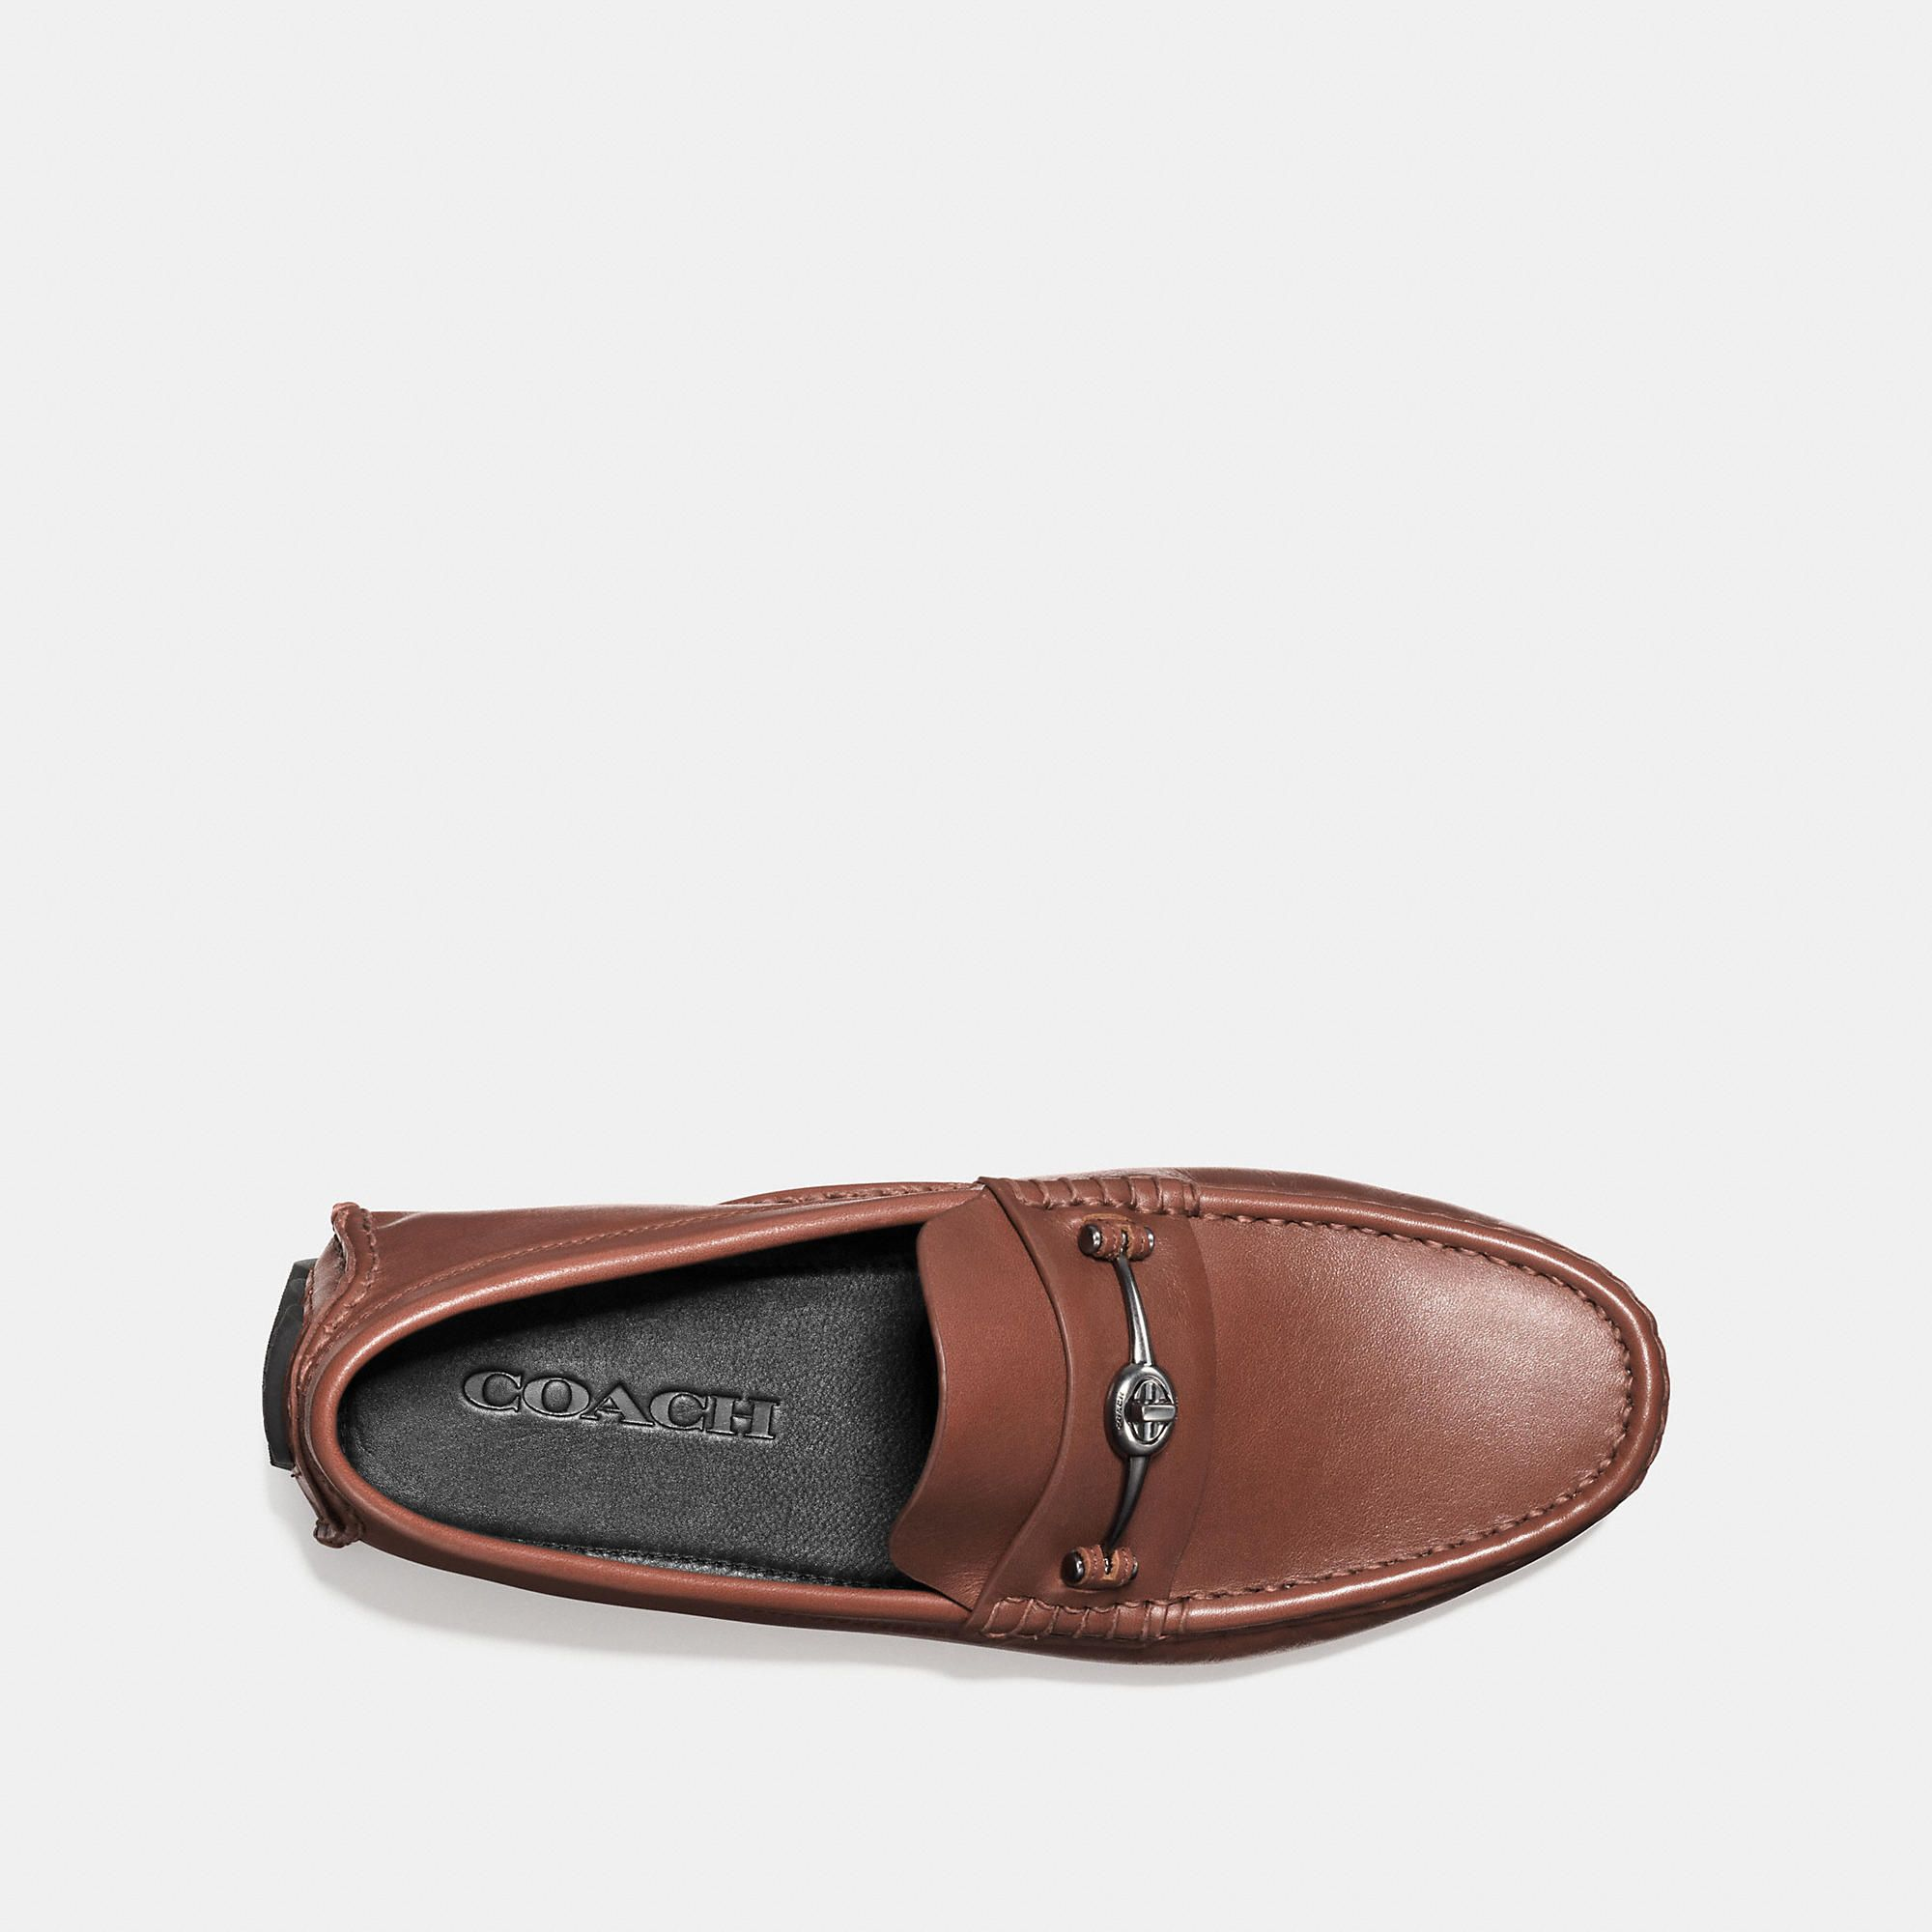 202f33ccbf18 COACH Men's Crosby Turnlock Driver Size 11.5D Loafers | Products ...